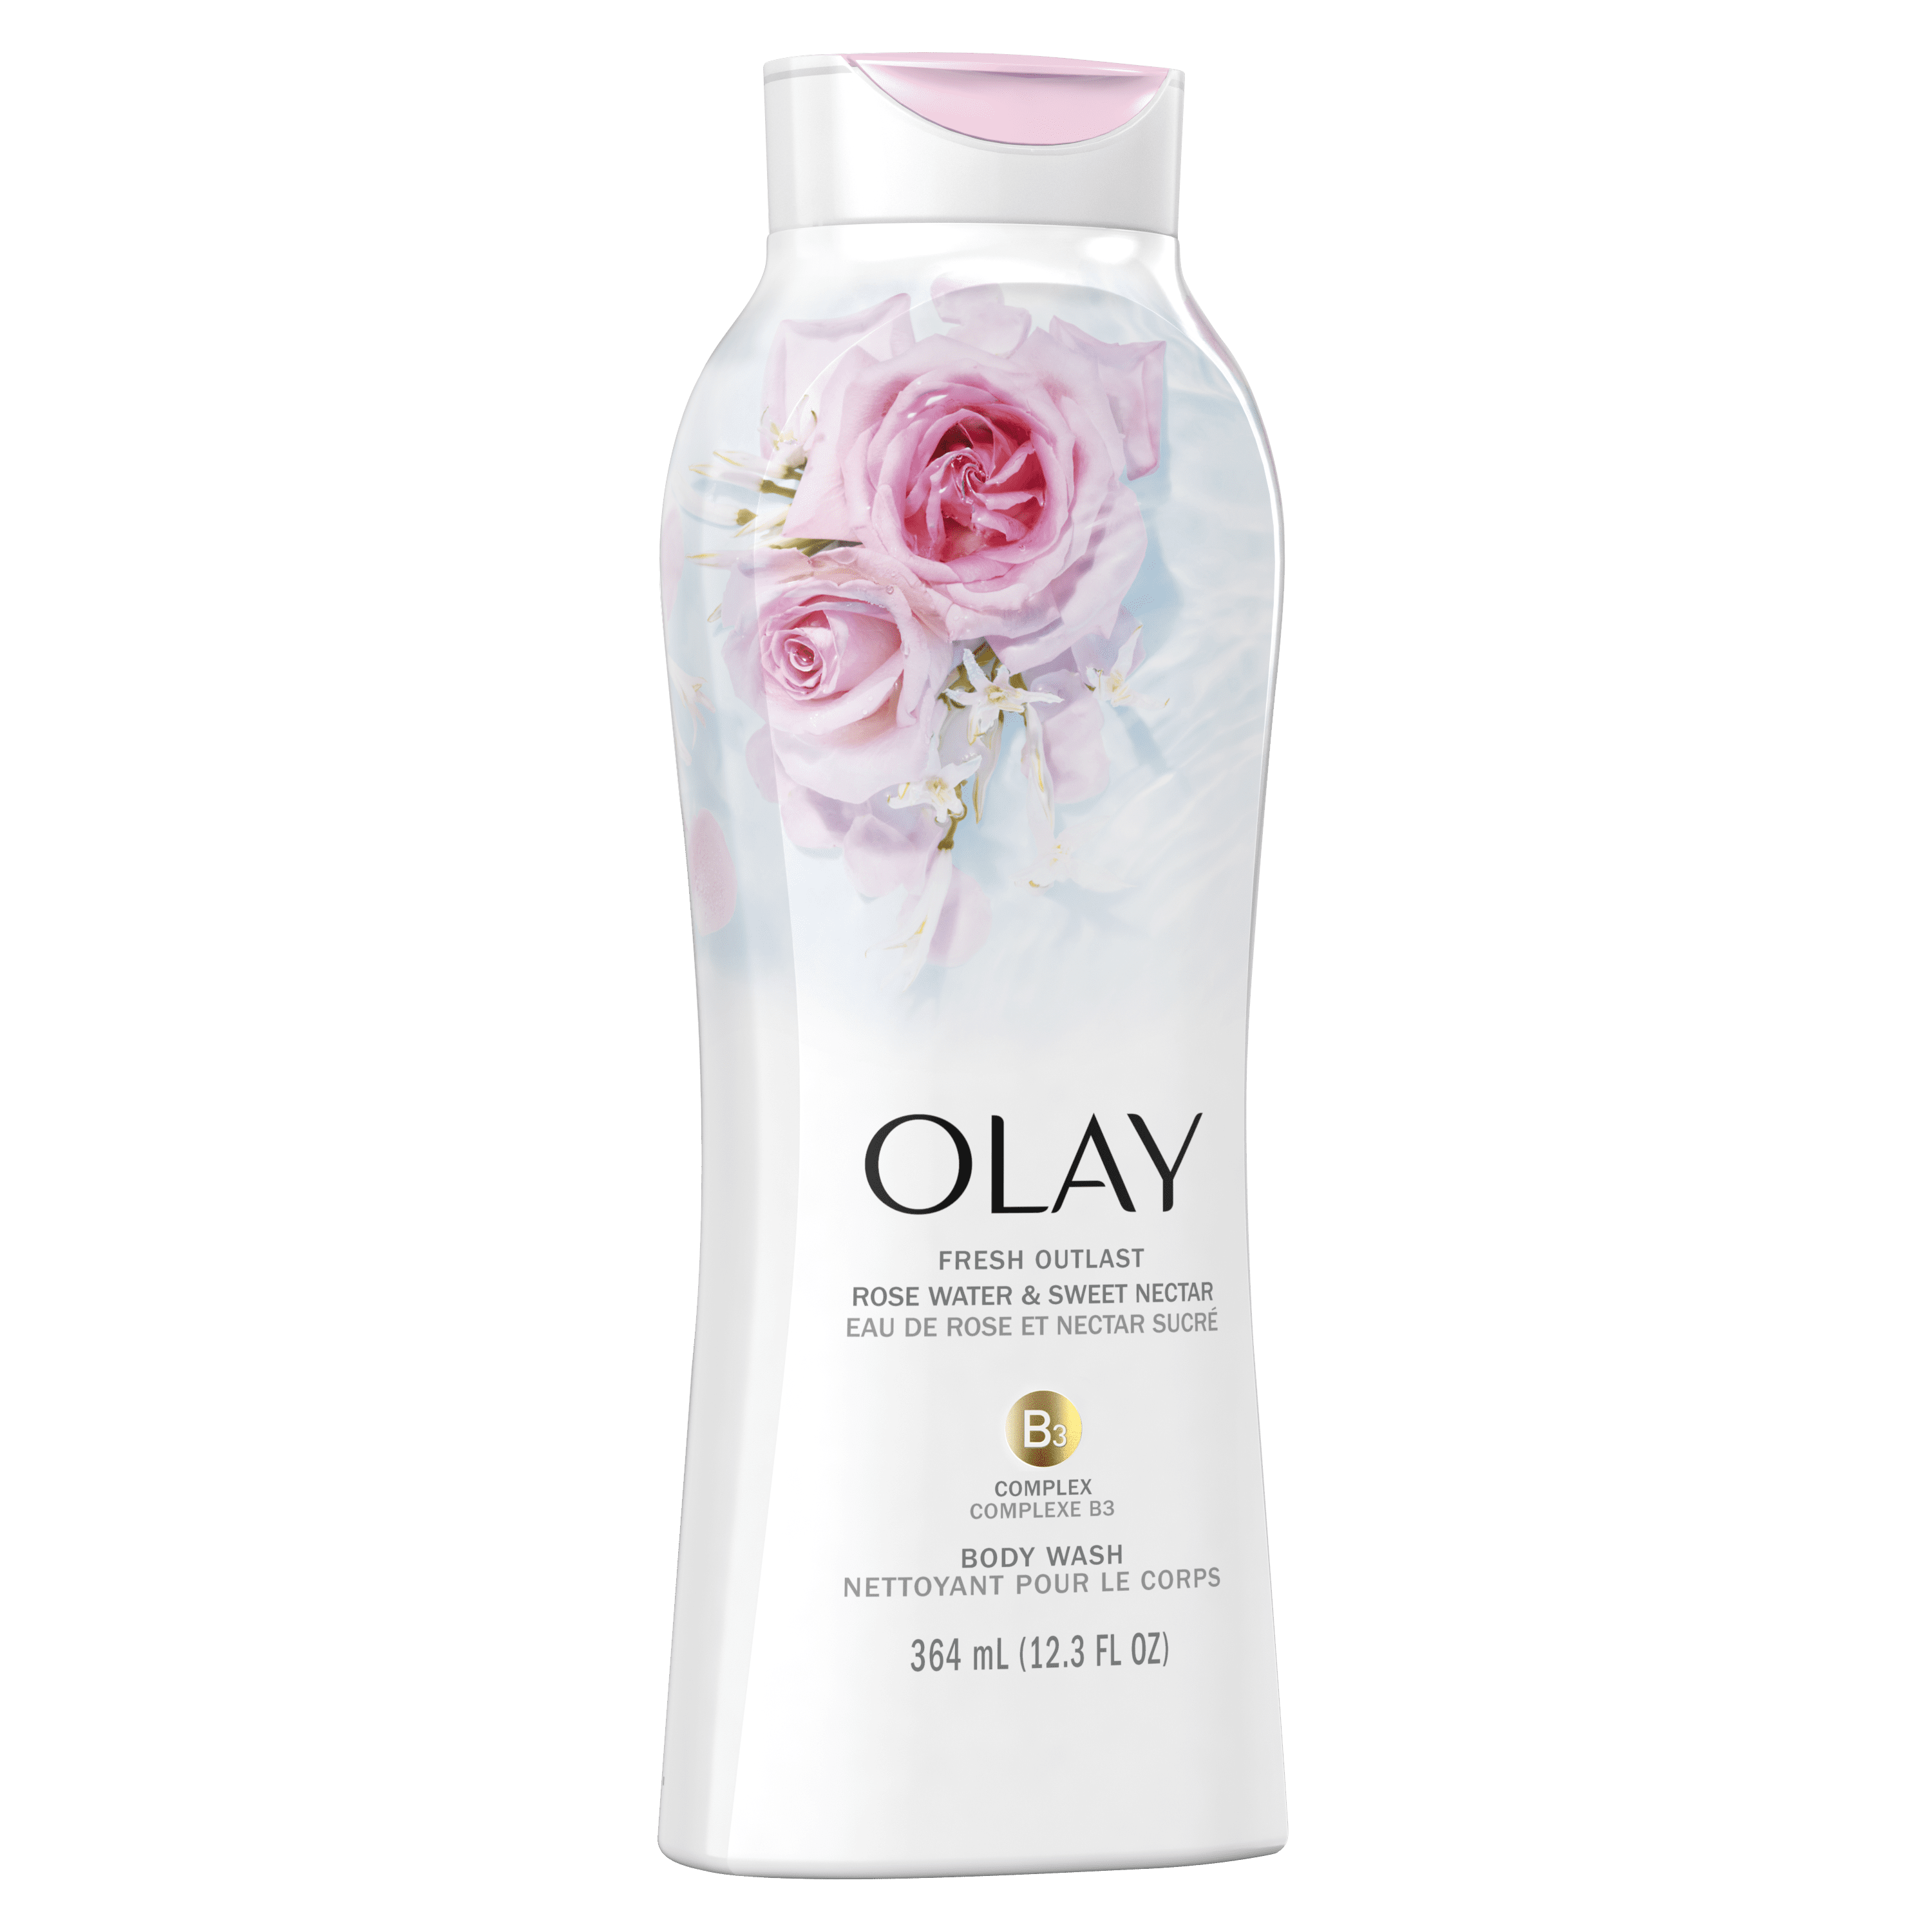 Rose Water and Sweet Nectar Fresh Outlast Body Wash_1